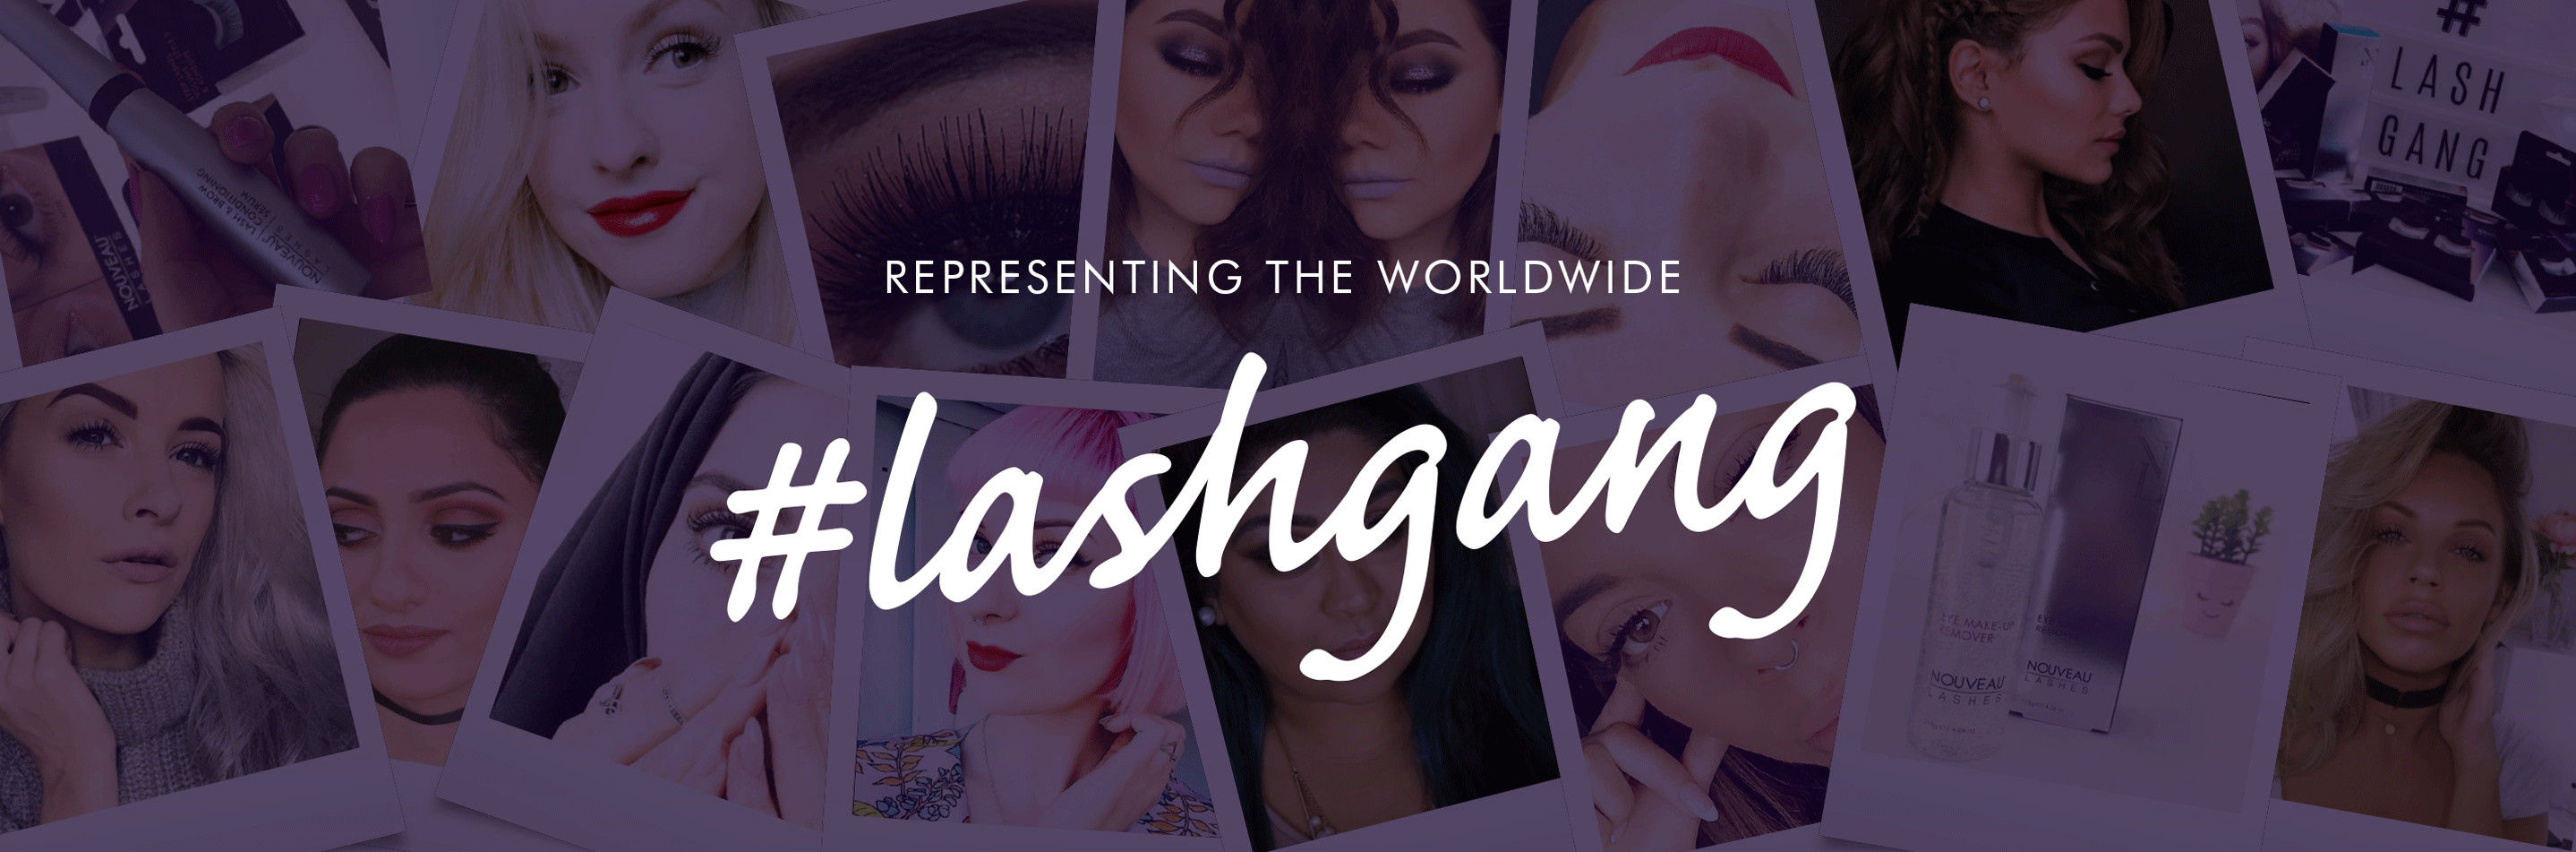 Representing the worldwide #lashgang